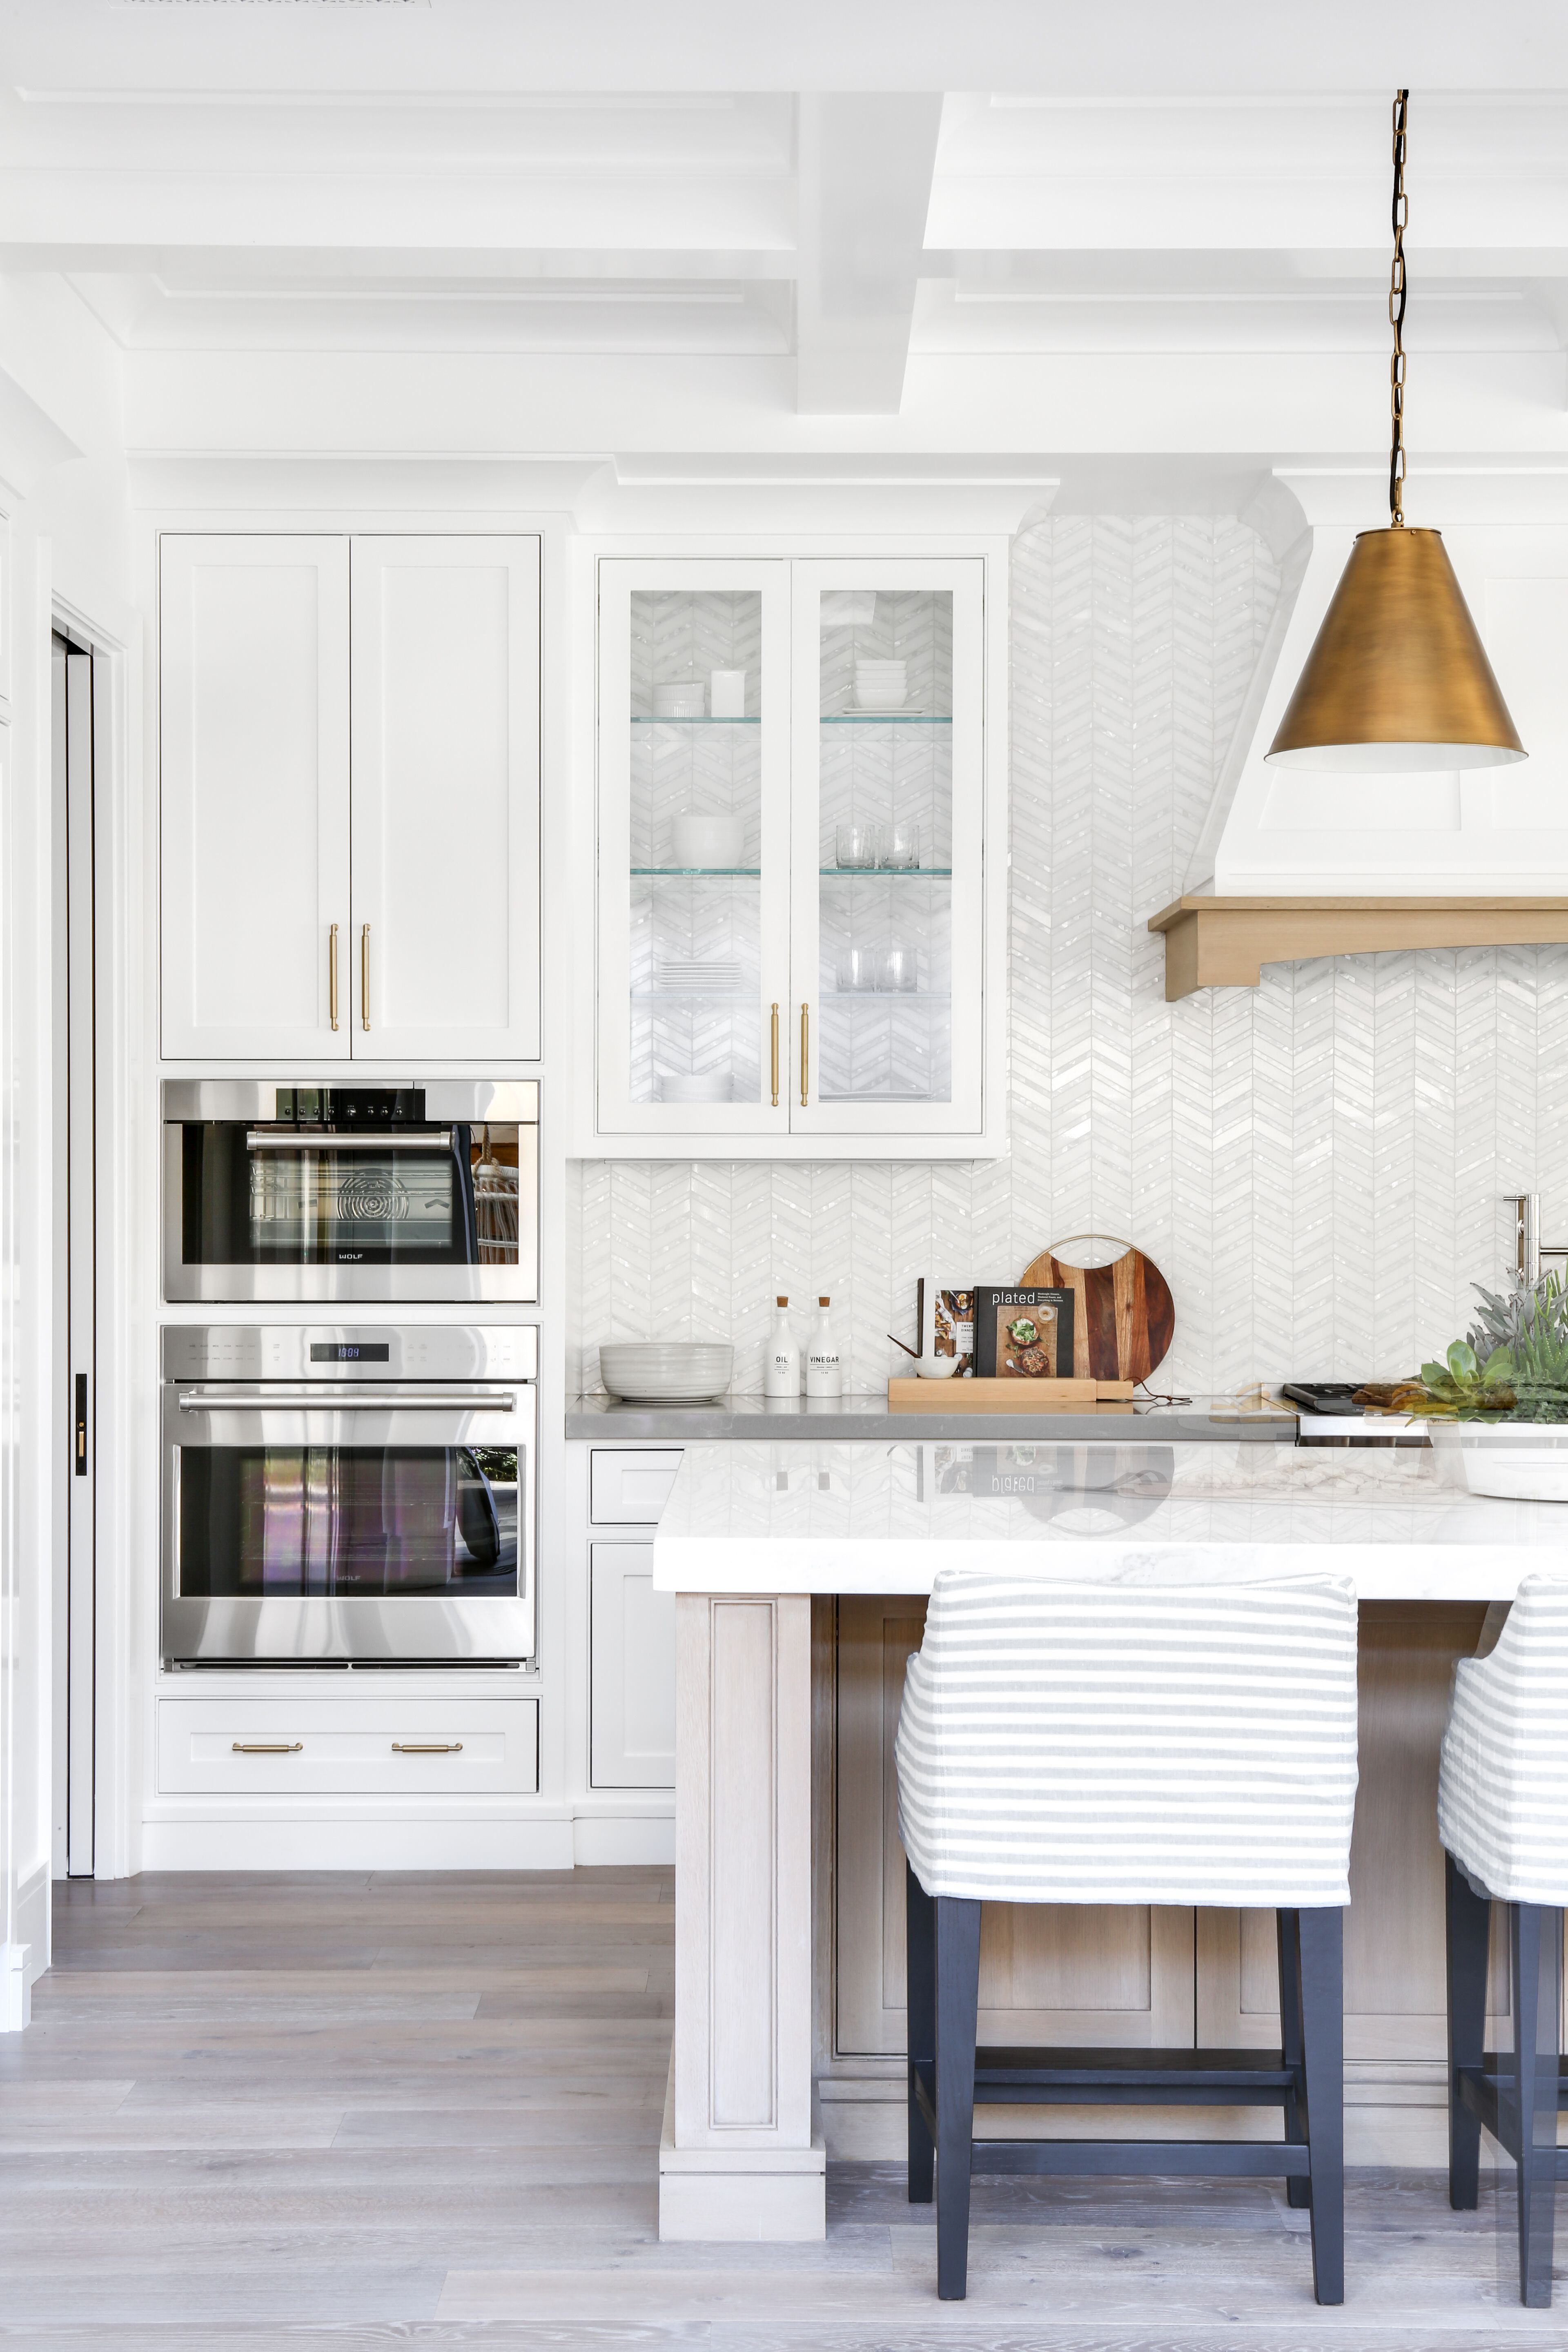 Orange county interior designer lindye galloway shares her tips on how to accessorize your kitchen to